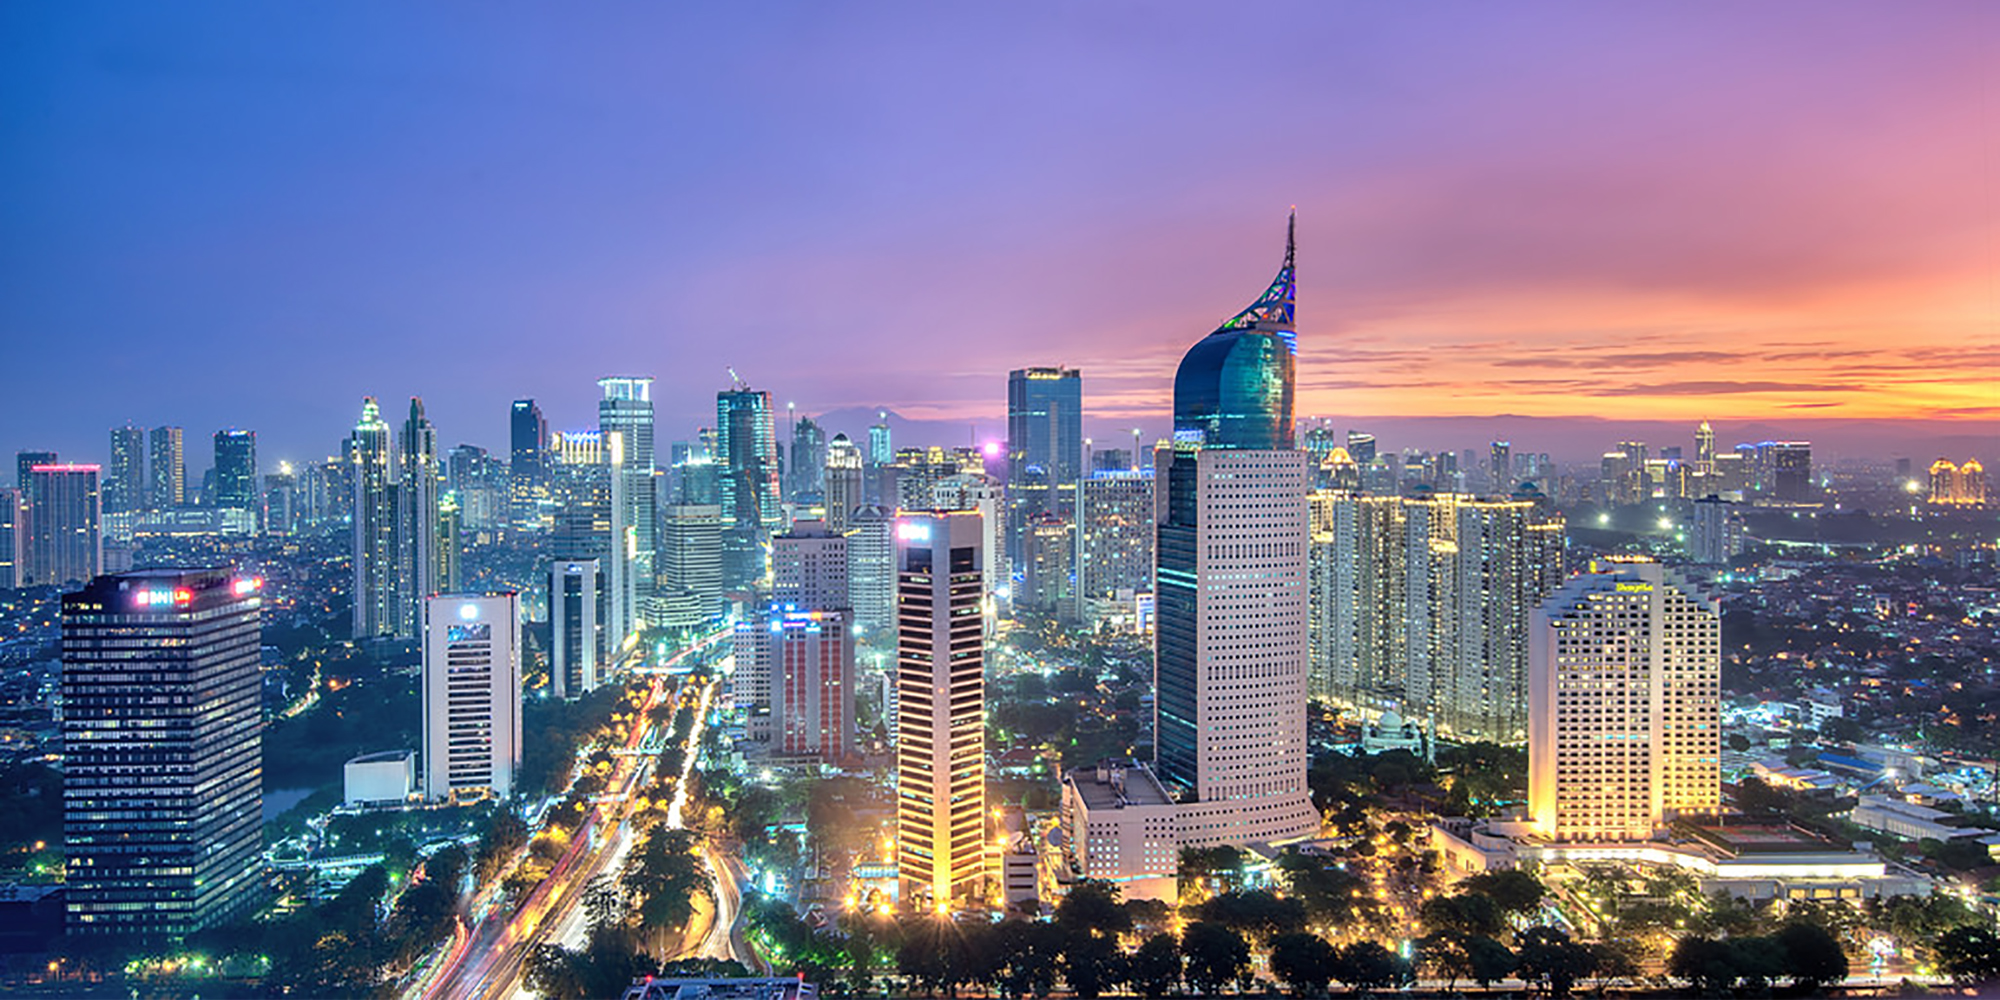 Indonesia & SE Asia, 6th Annual International Arbitration & Regulatory Summit